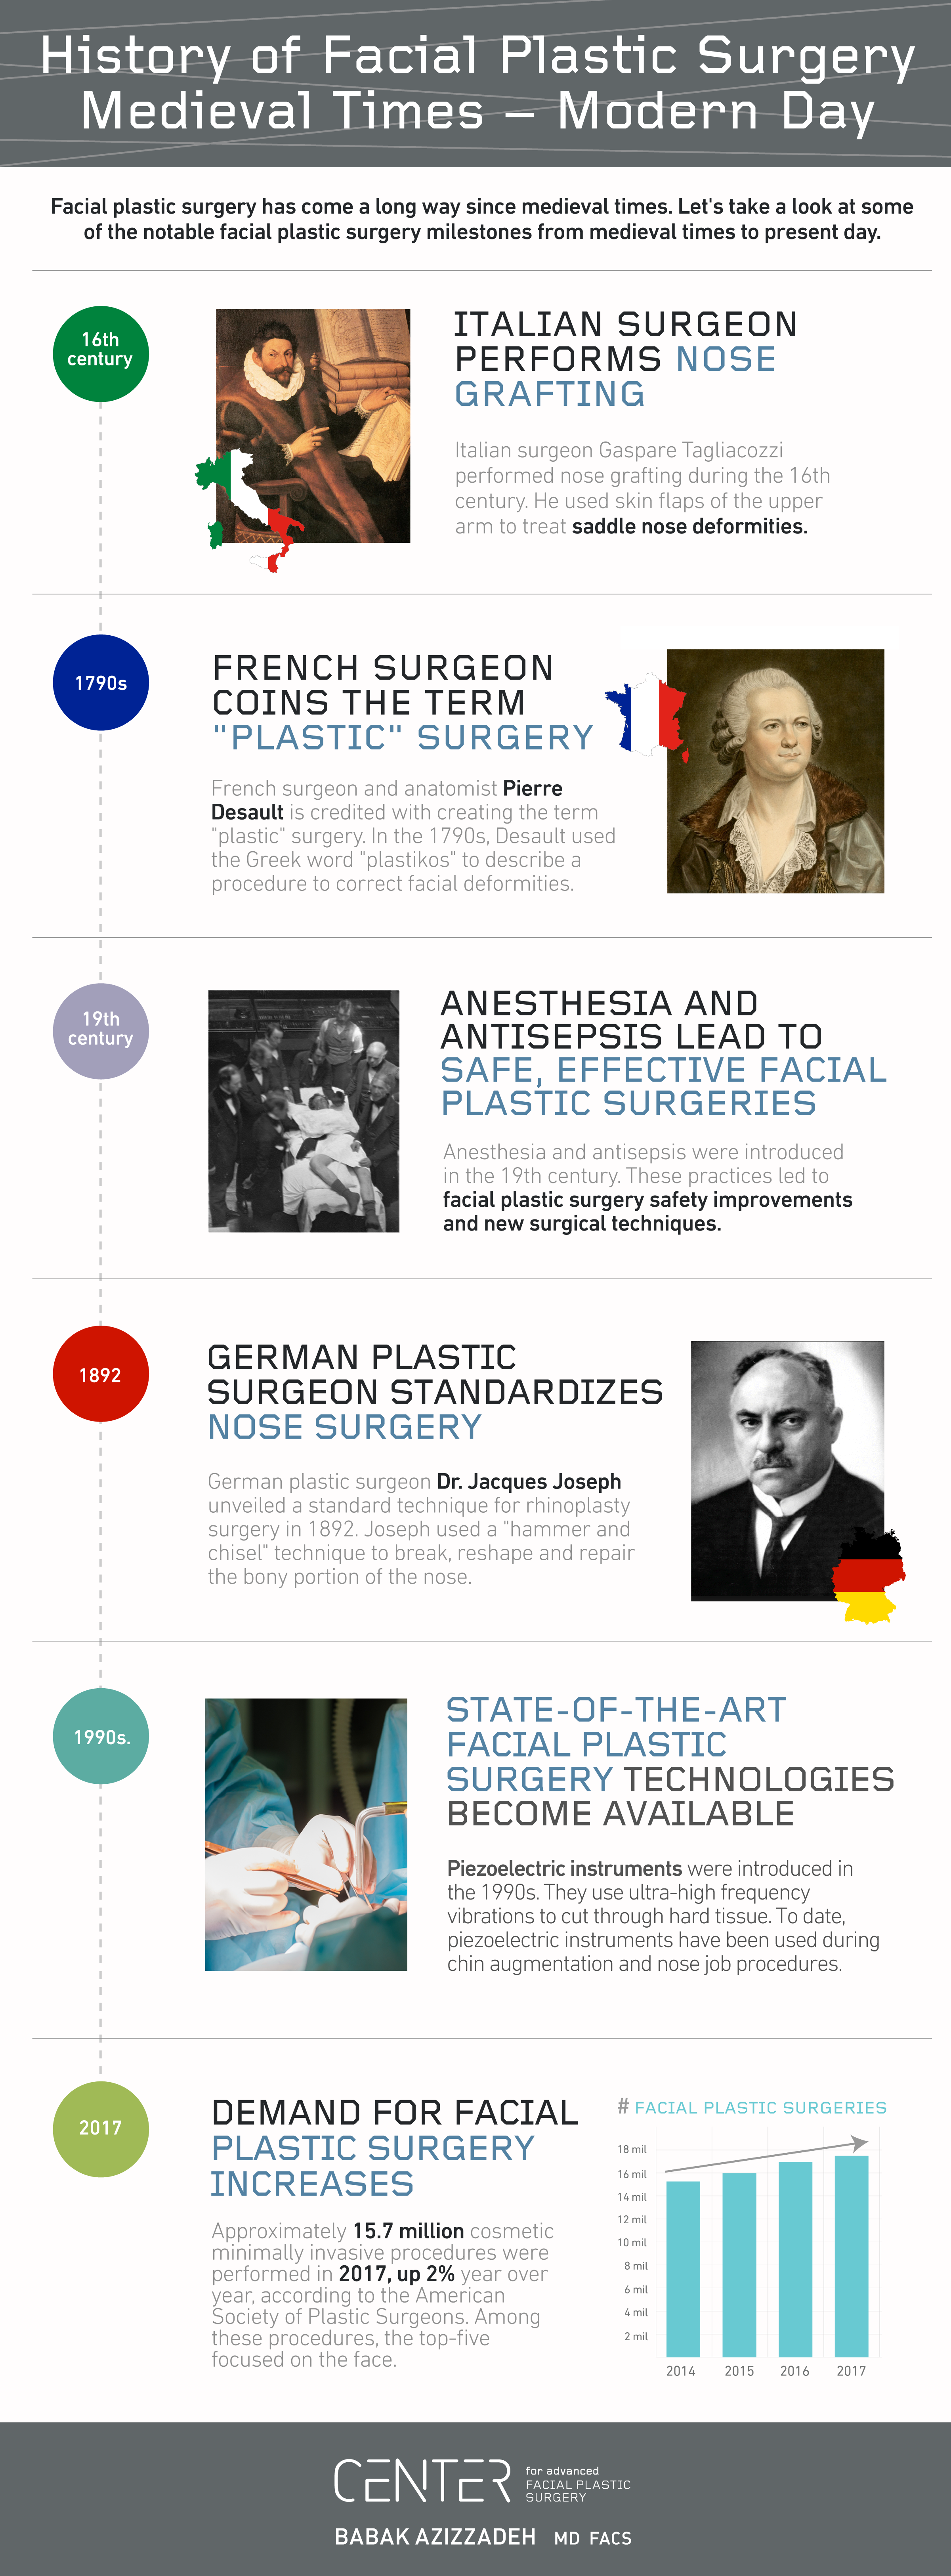 History of Facial Plastic Surgery: Medieval Times – Modern Day